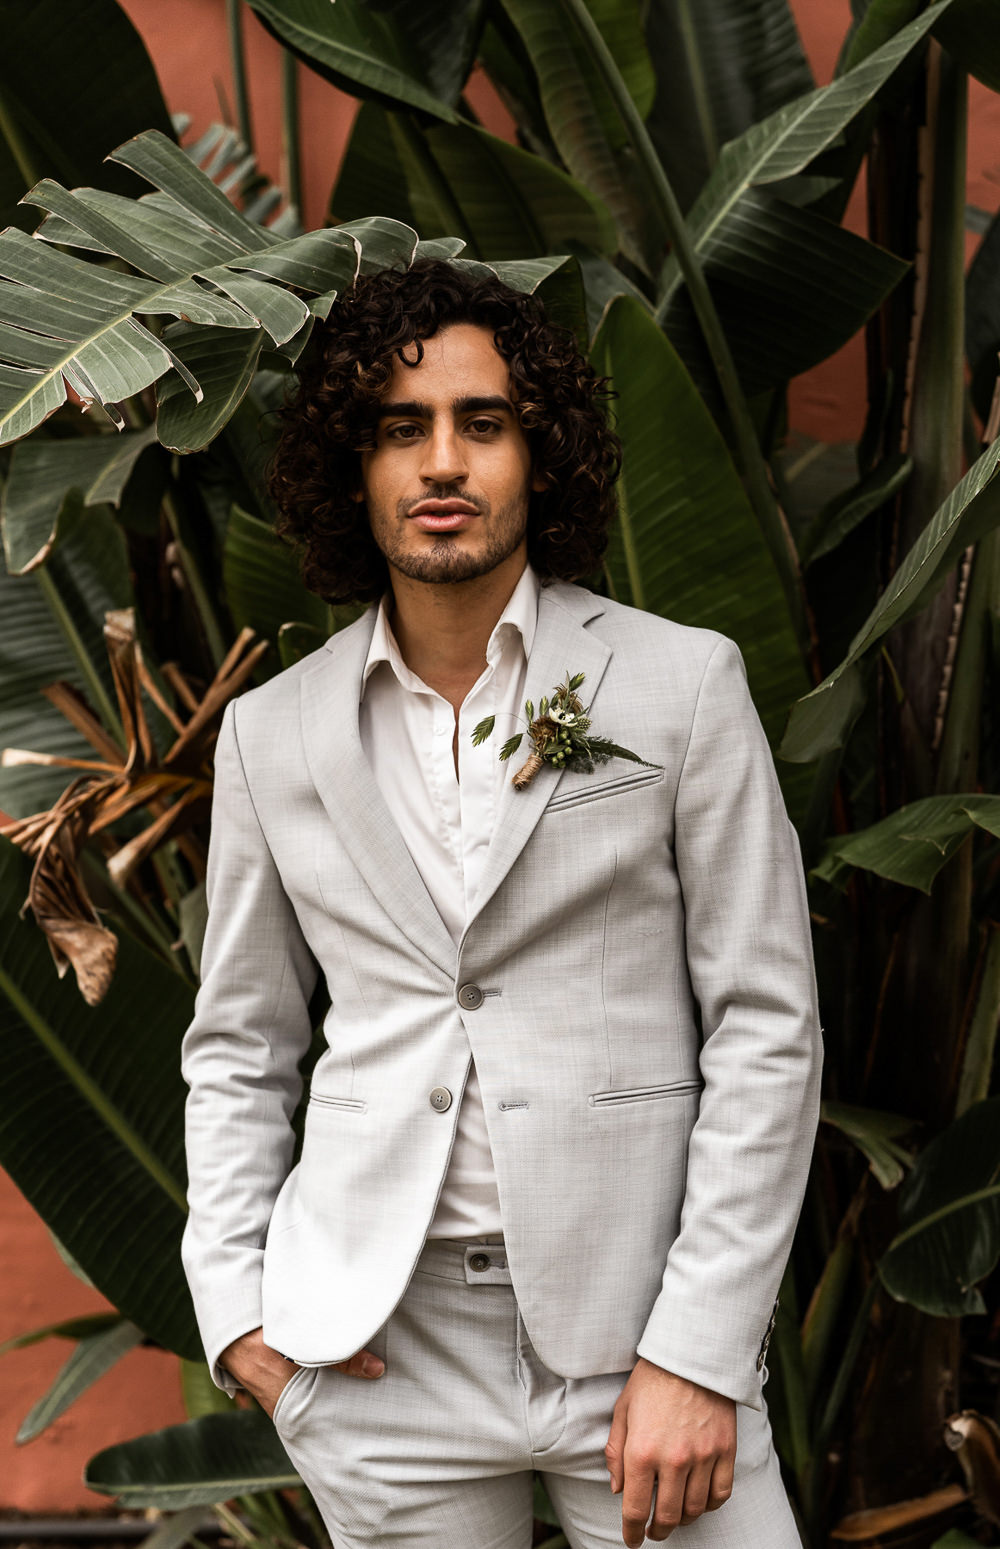 Groom Suit Grey Open Collar Marbella Elopement Wedding Nora Photography